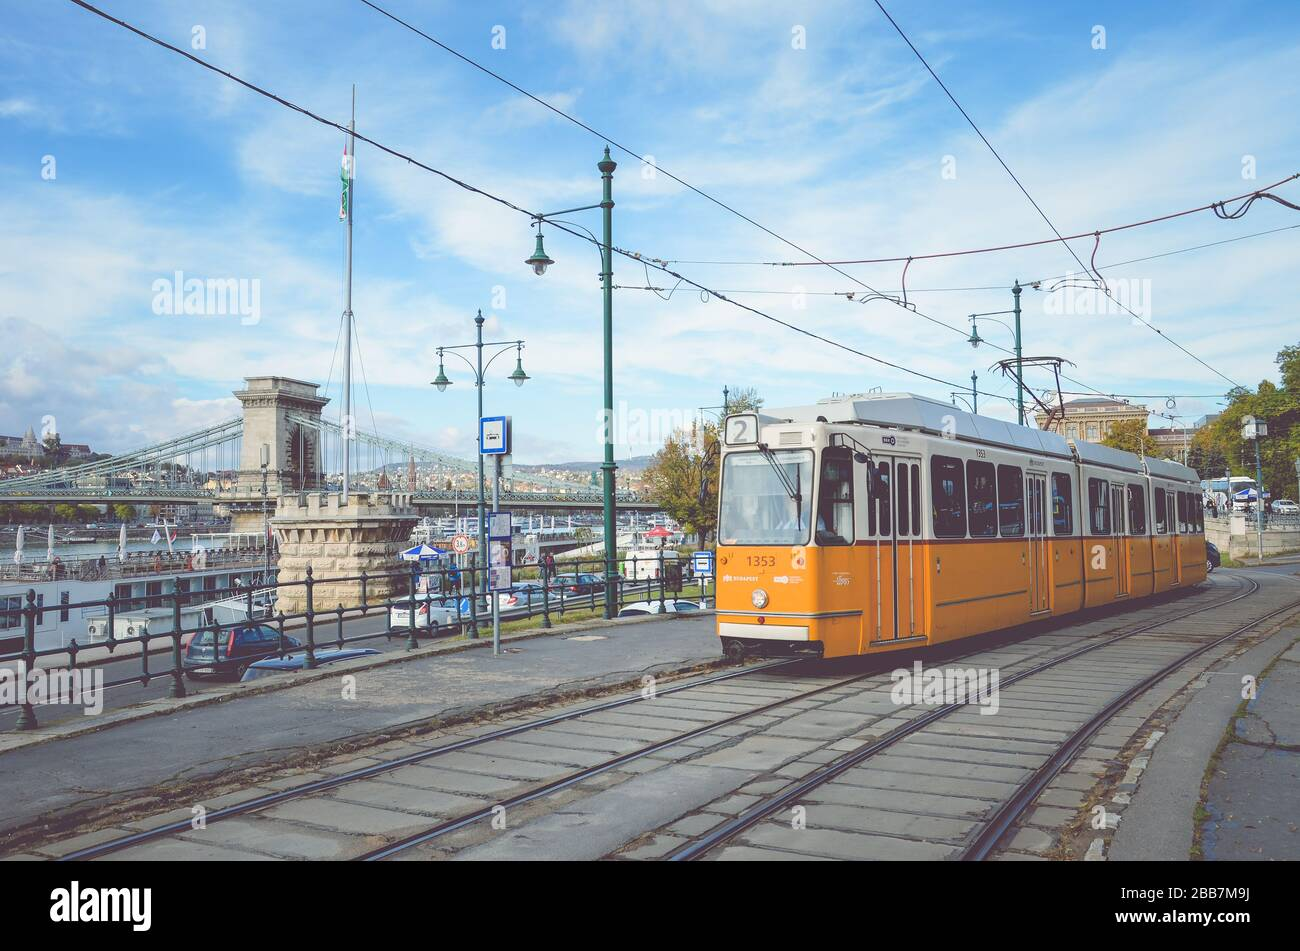 Budapest, Hungary - Nov 6, 2019: Yellow tram at a tram station. Szechenyi chain bridge and the historical center in the background. Hungarian public transport. Horizontal photo with filter. Stock Photo